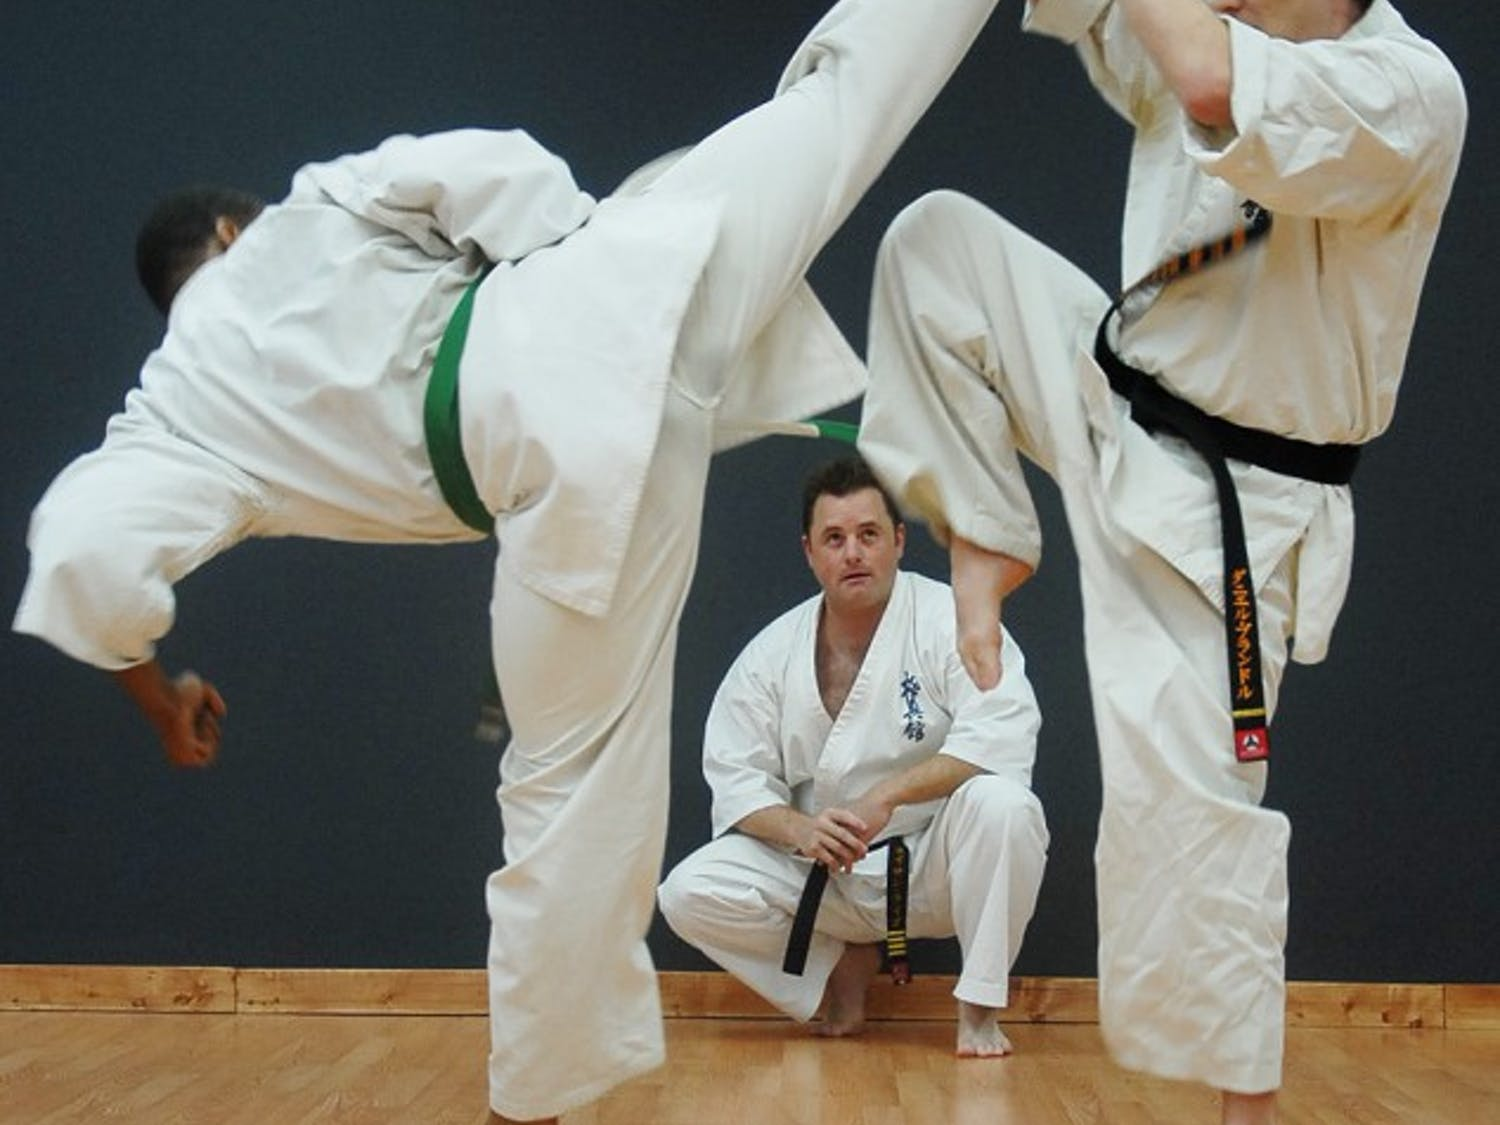 Instructor Nathan Ligo mentors Daniel Brandl and Donald Harris, two of five of his instructors for his Karate studio on Monday night. Donald Harris (left) is fighting in Japan next week.